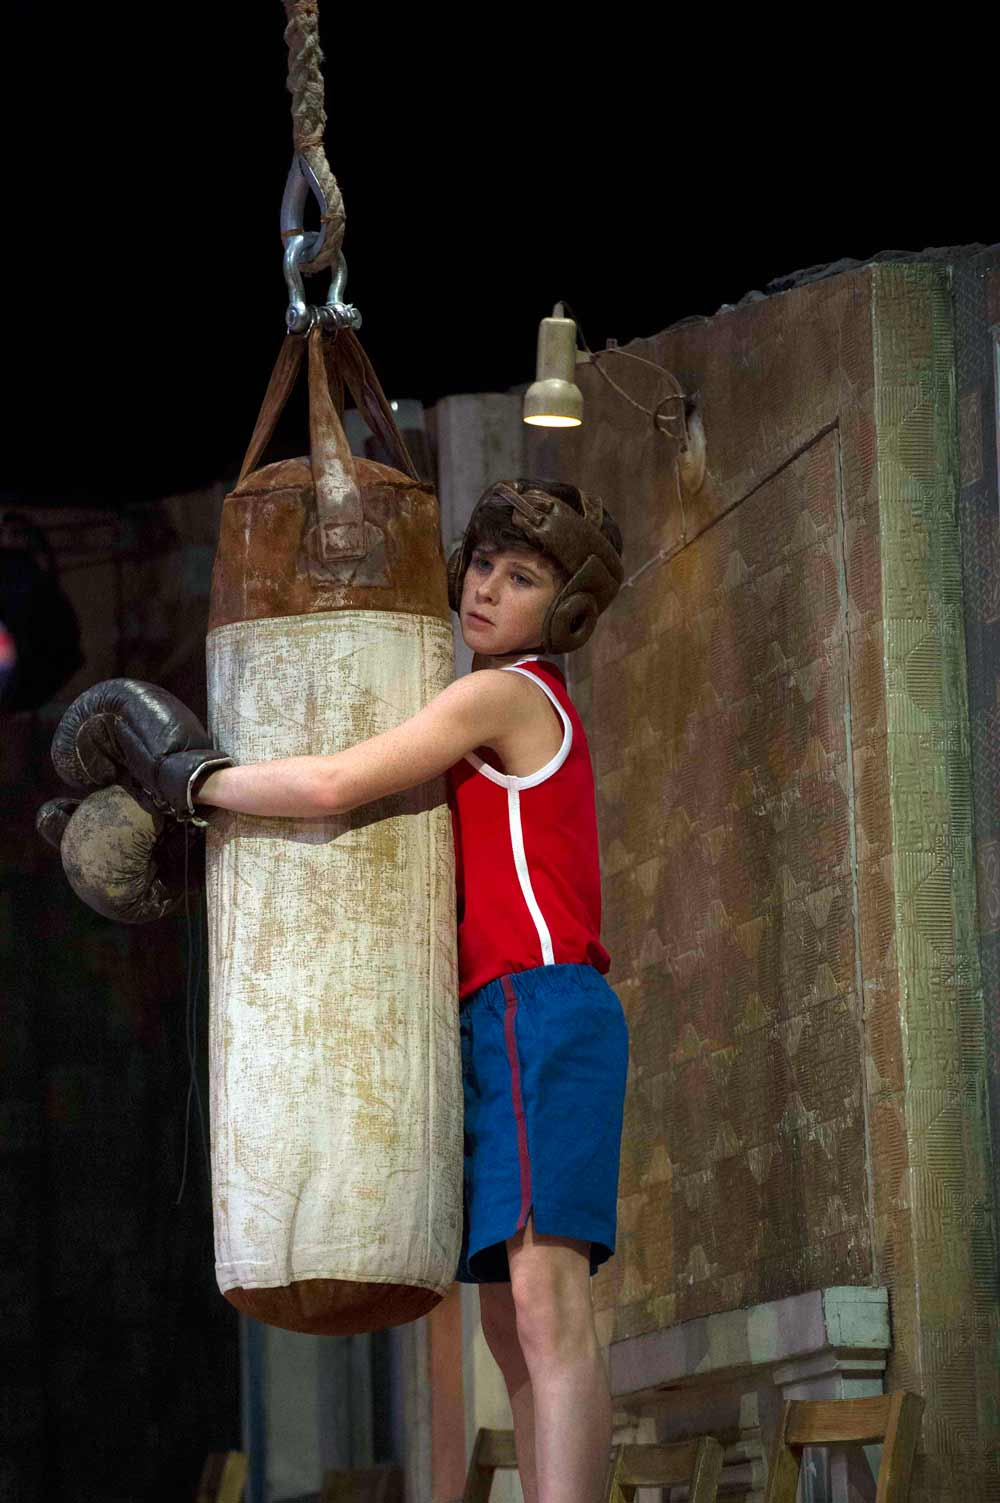 Image Galleries For Lionaid Campaigns: Billy Elliot The Musical UK & Ireland Tour